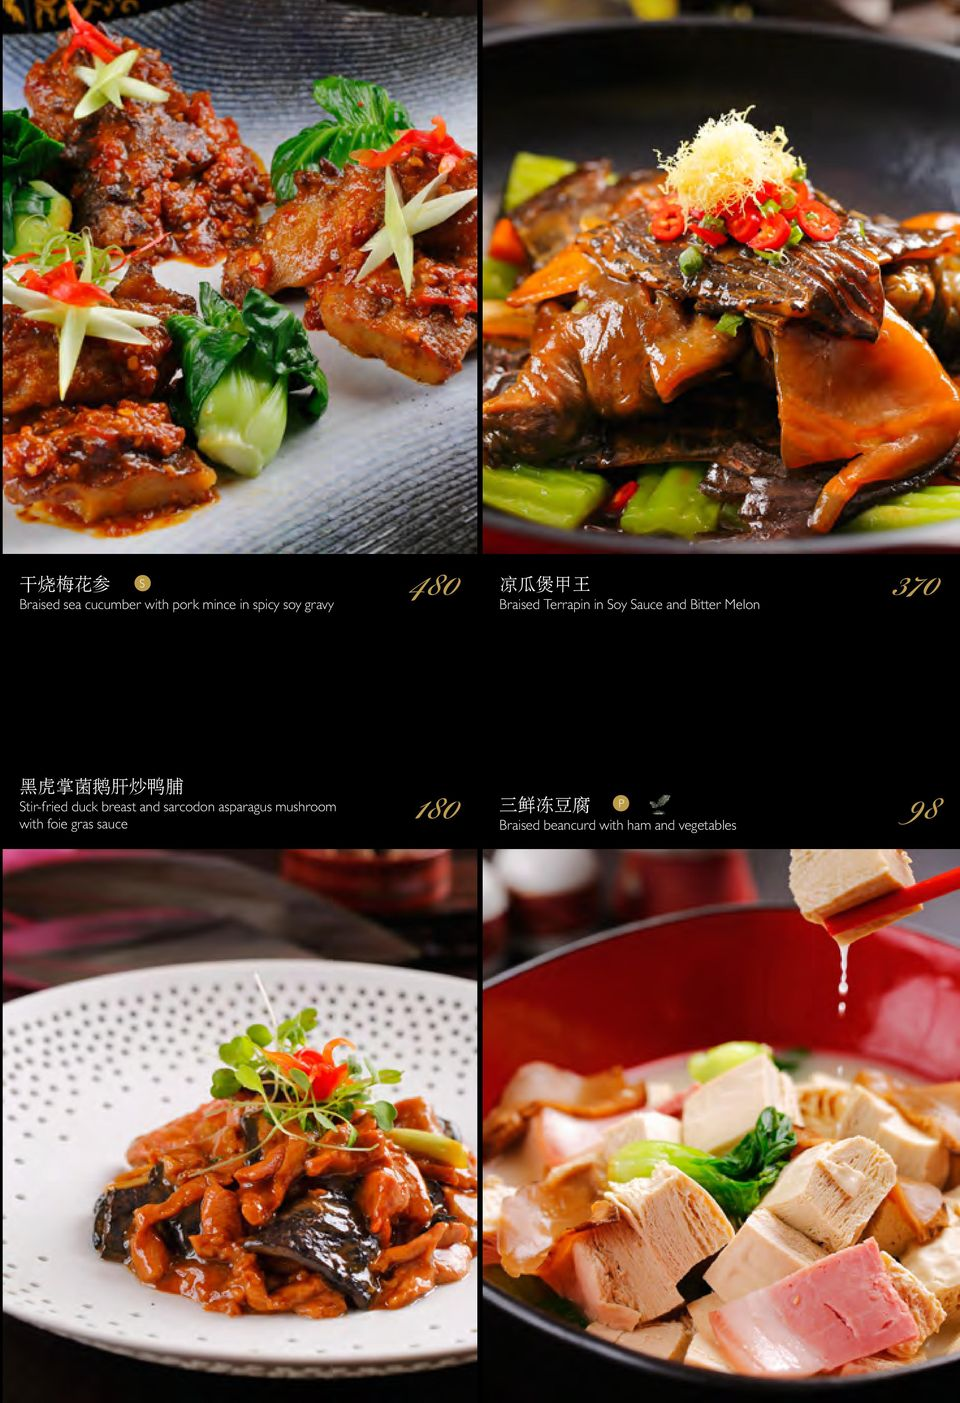 菌 鹅 肝 炒 鸭 脯 Stir-fried duck breast and sarcodon asparagus mushroom